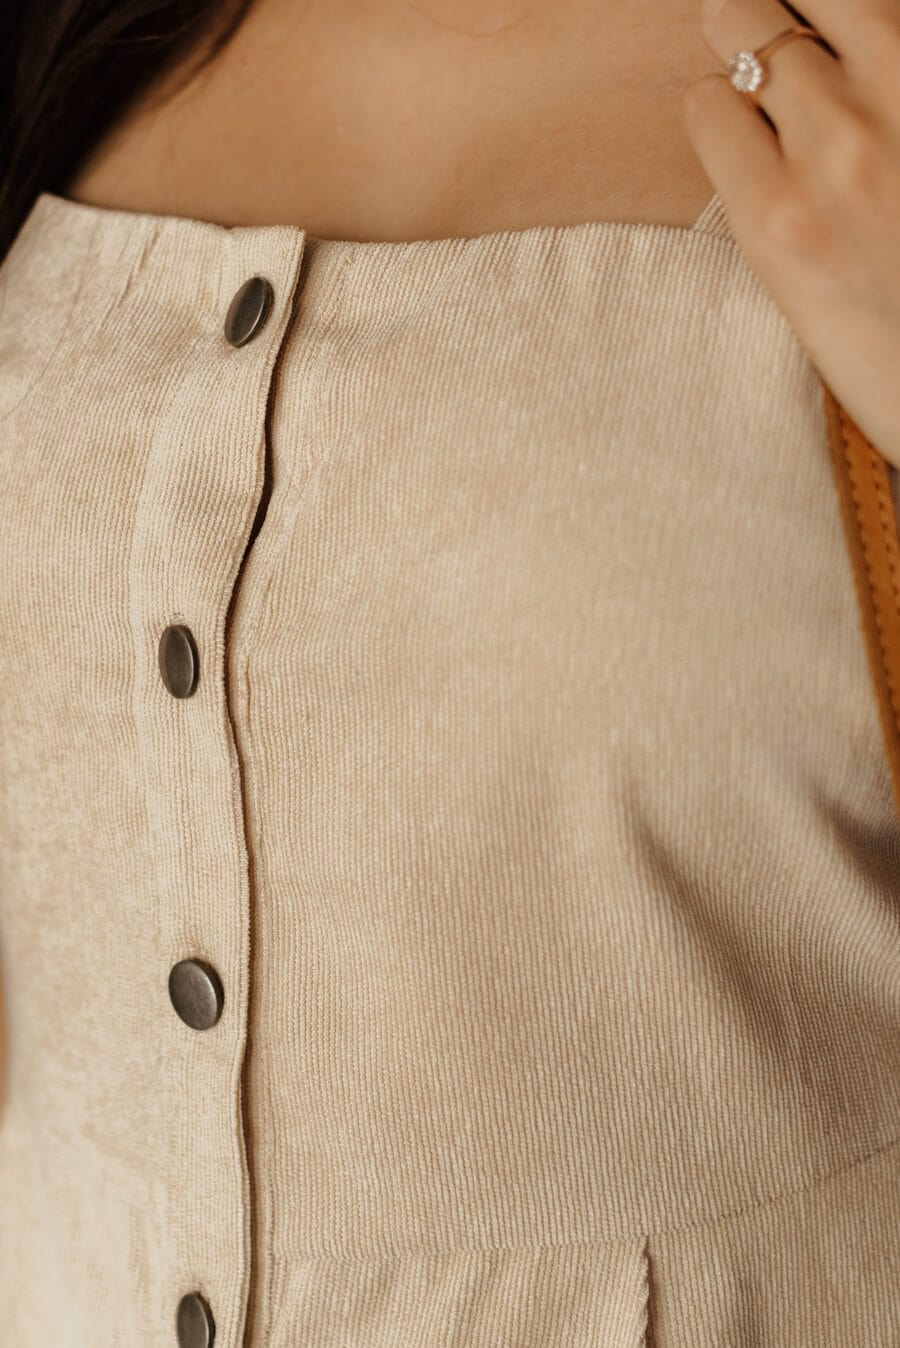 Century Corduroy Dress - Beige